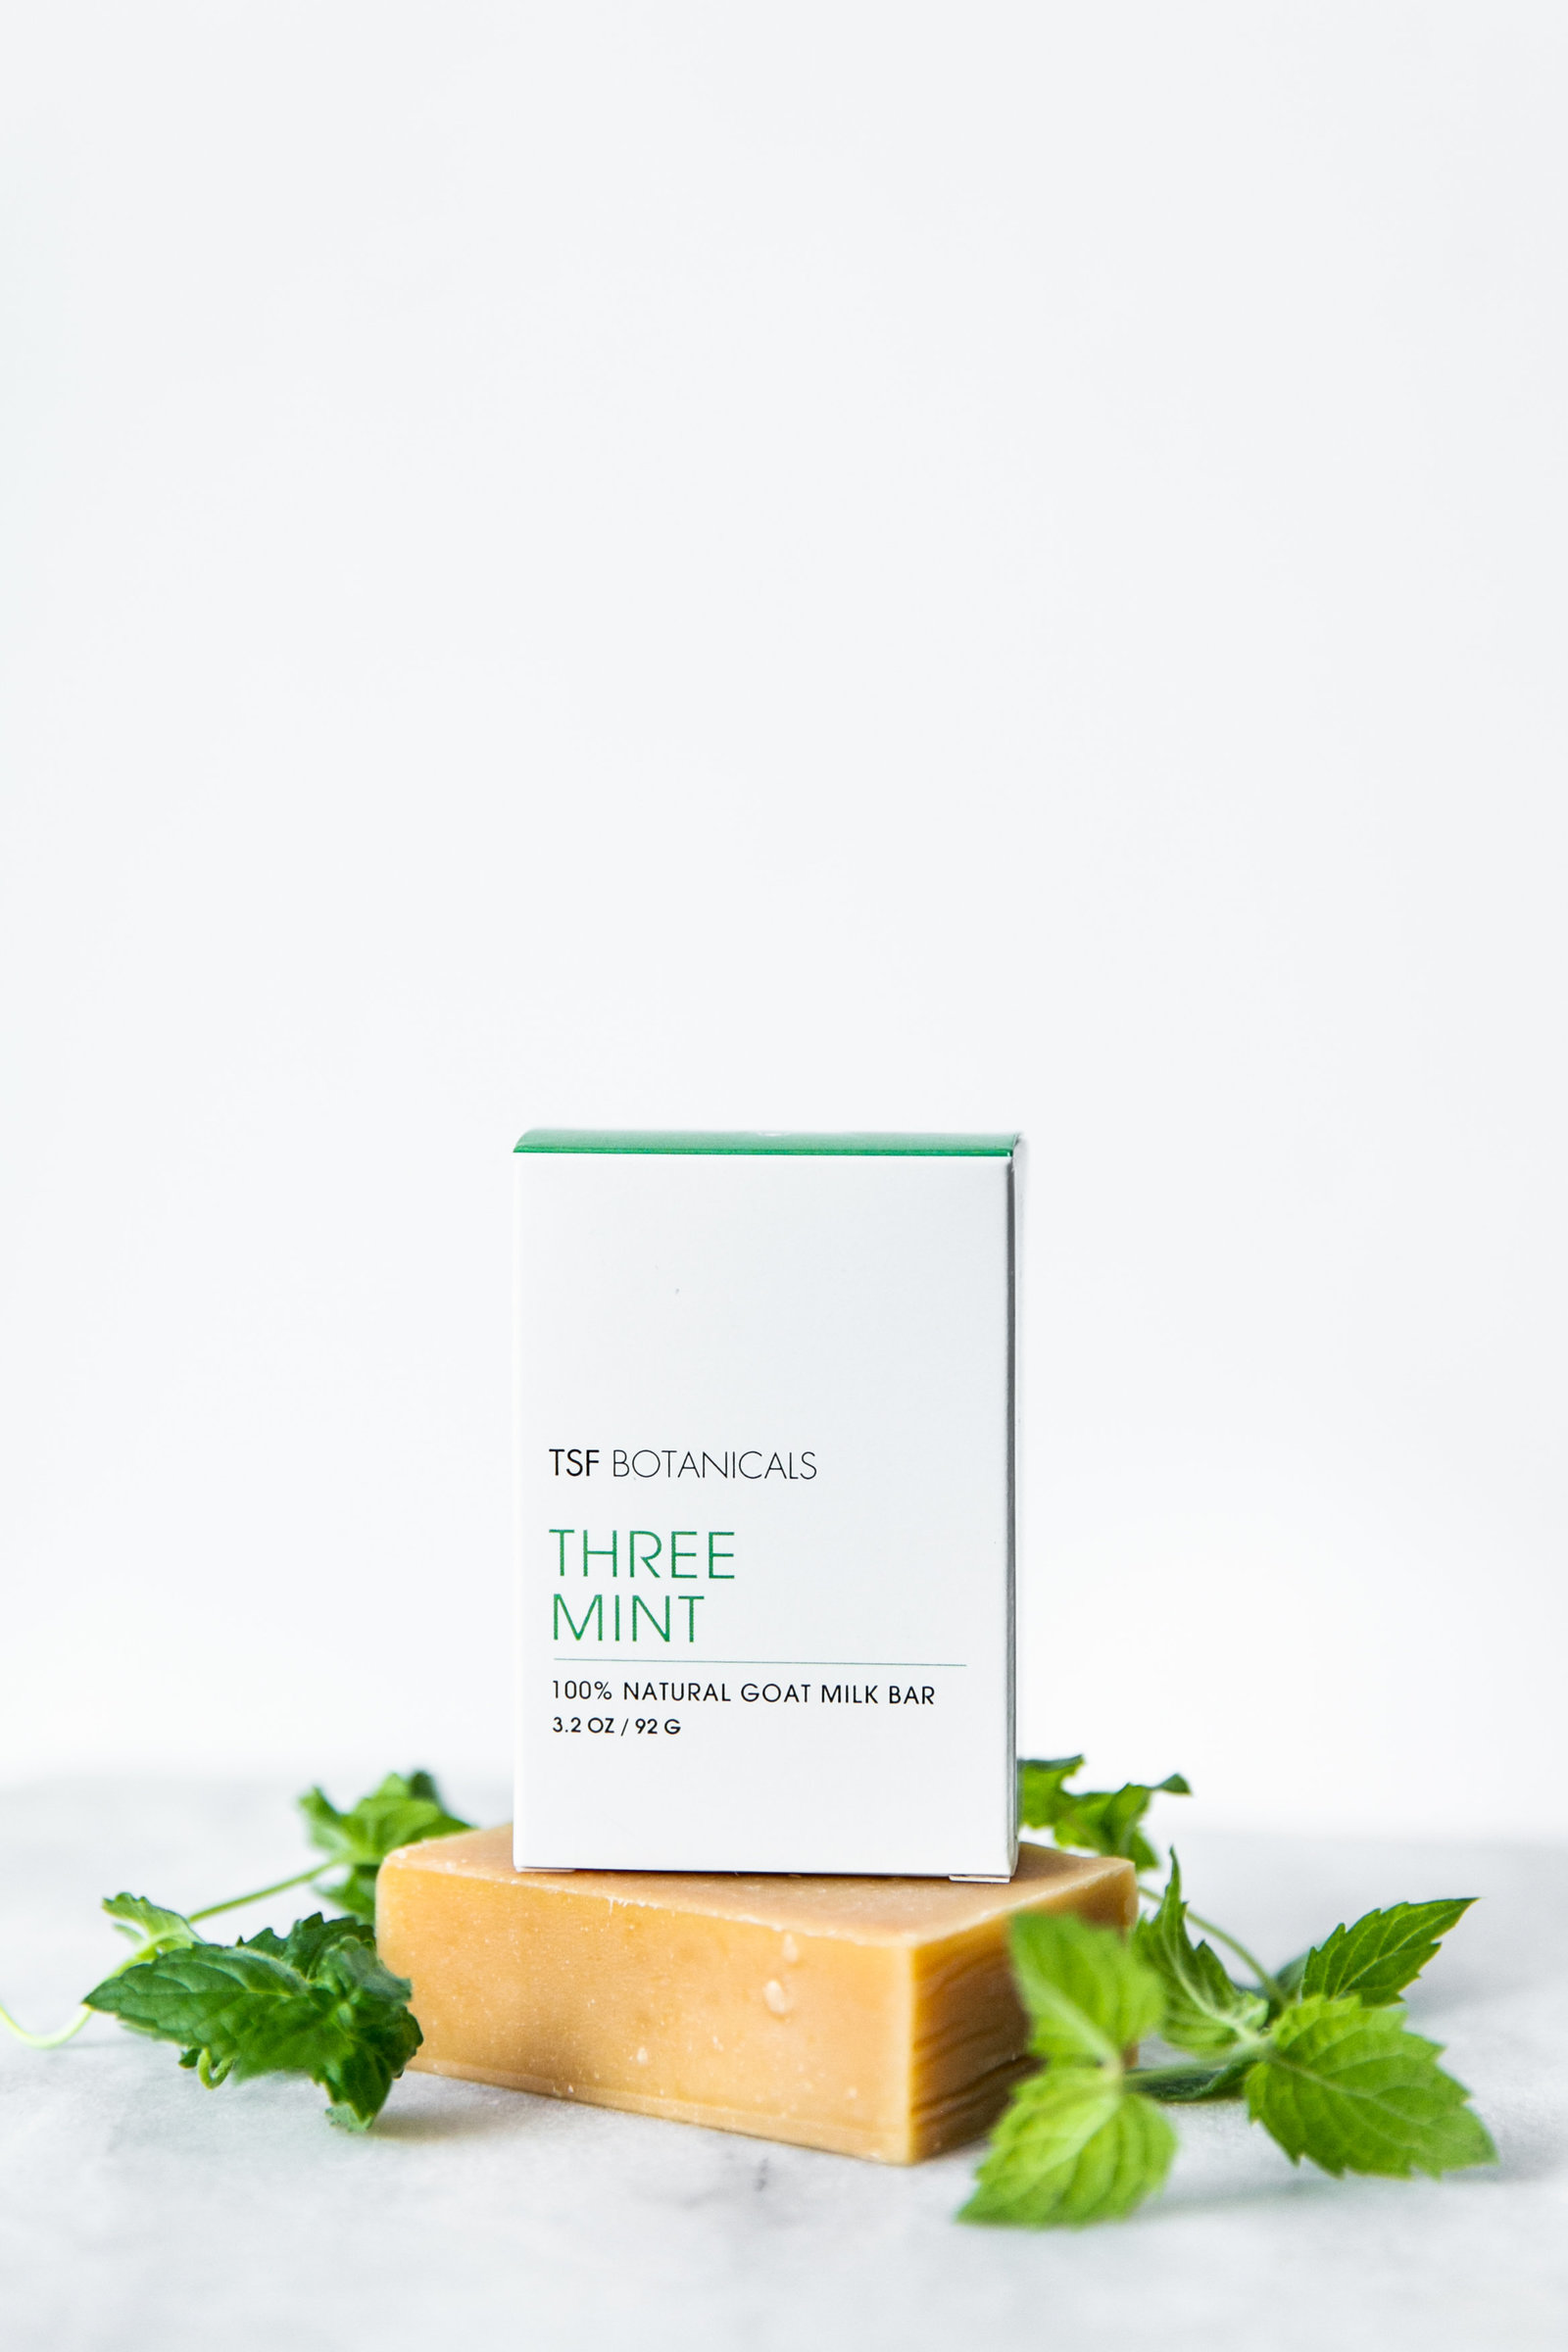 Karlie Colleen Photography - TSF Botanicals - Clean Natural Beauty Skincare Products-10